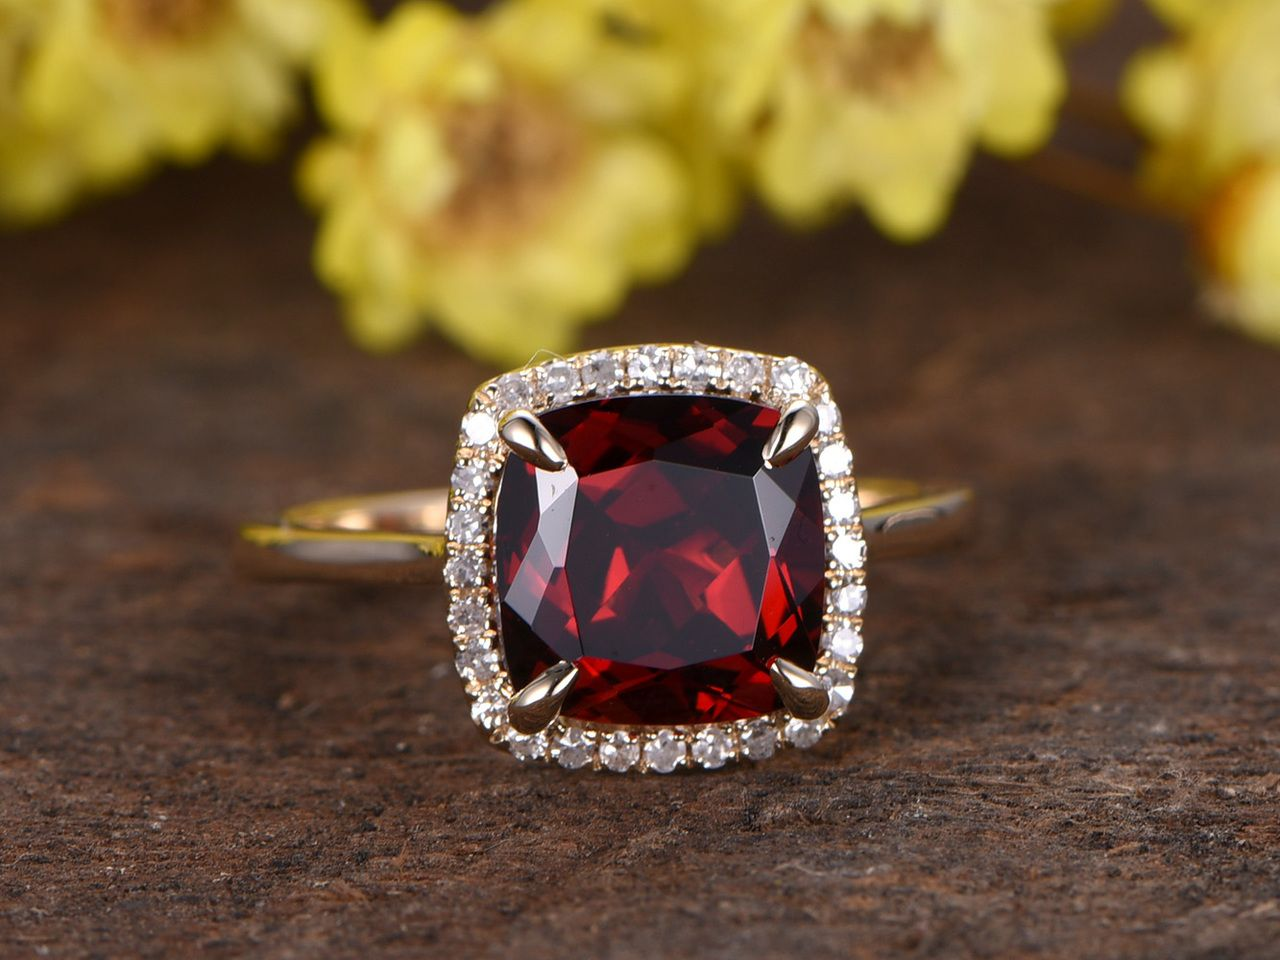 Garnet with White CZ Gemstone 925 Sterling Silver Split Shank Halo Style Marquise Cut Ring